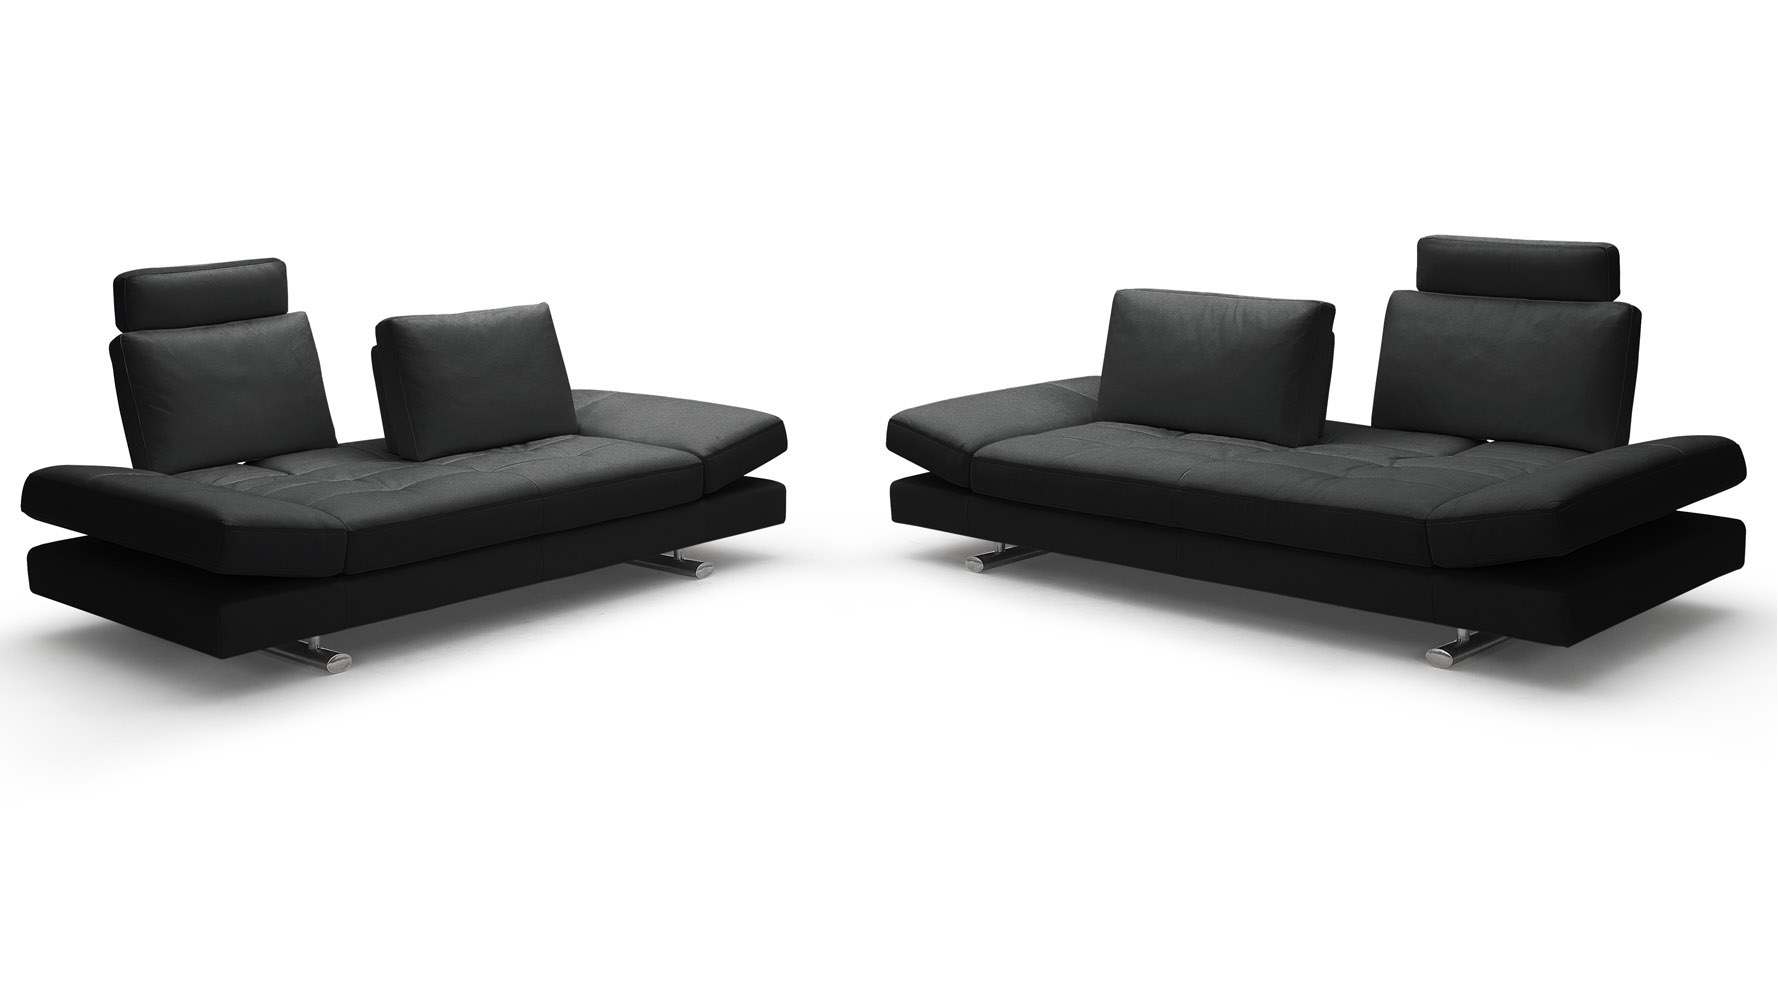 http://www.zurifurniture.com/common/images/products/large/bentley-leather-sofa-set-black.jpg